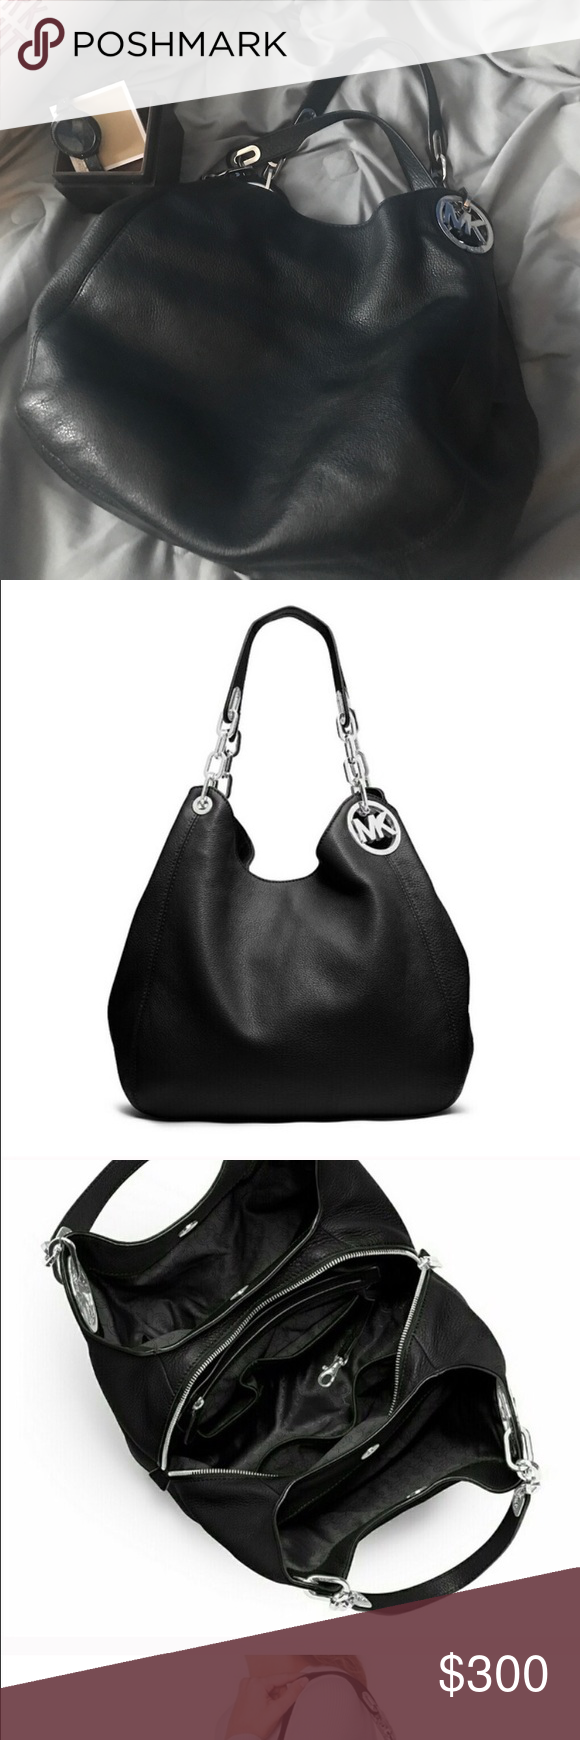 28cf368cc9 MK Black Fulton Large Hobo Bag. BEAUTIFUL!! Gorgeous Michael Kors Fulton  Hobo with silver hardware. Used only a few times. Michael Kors Bags Hobos